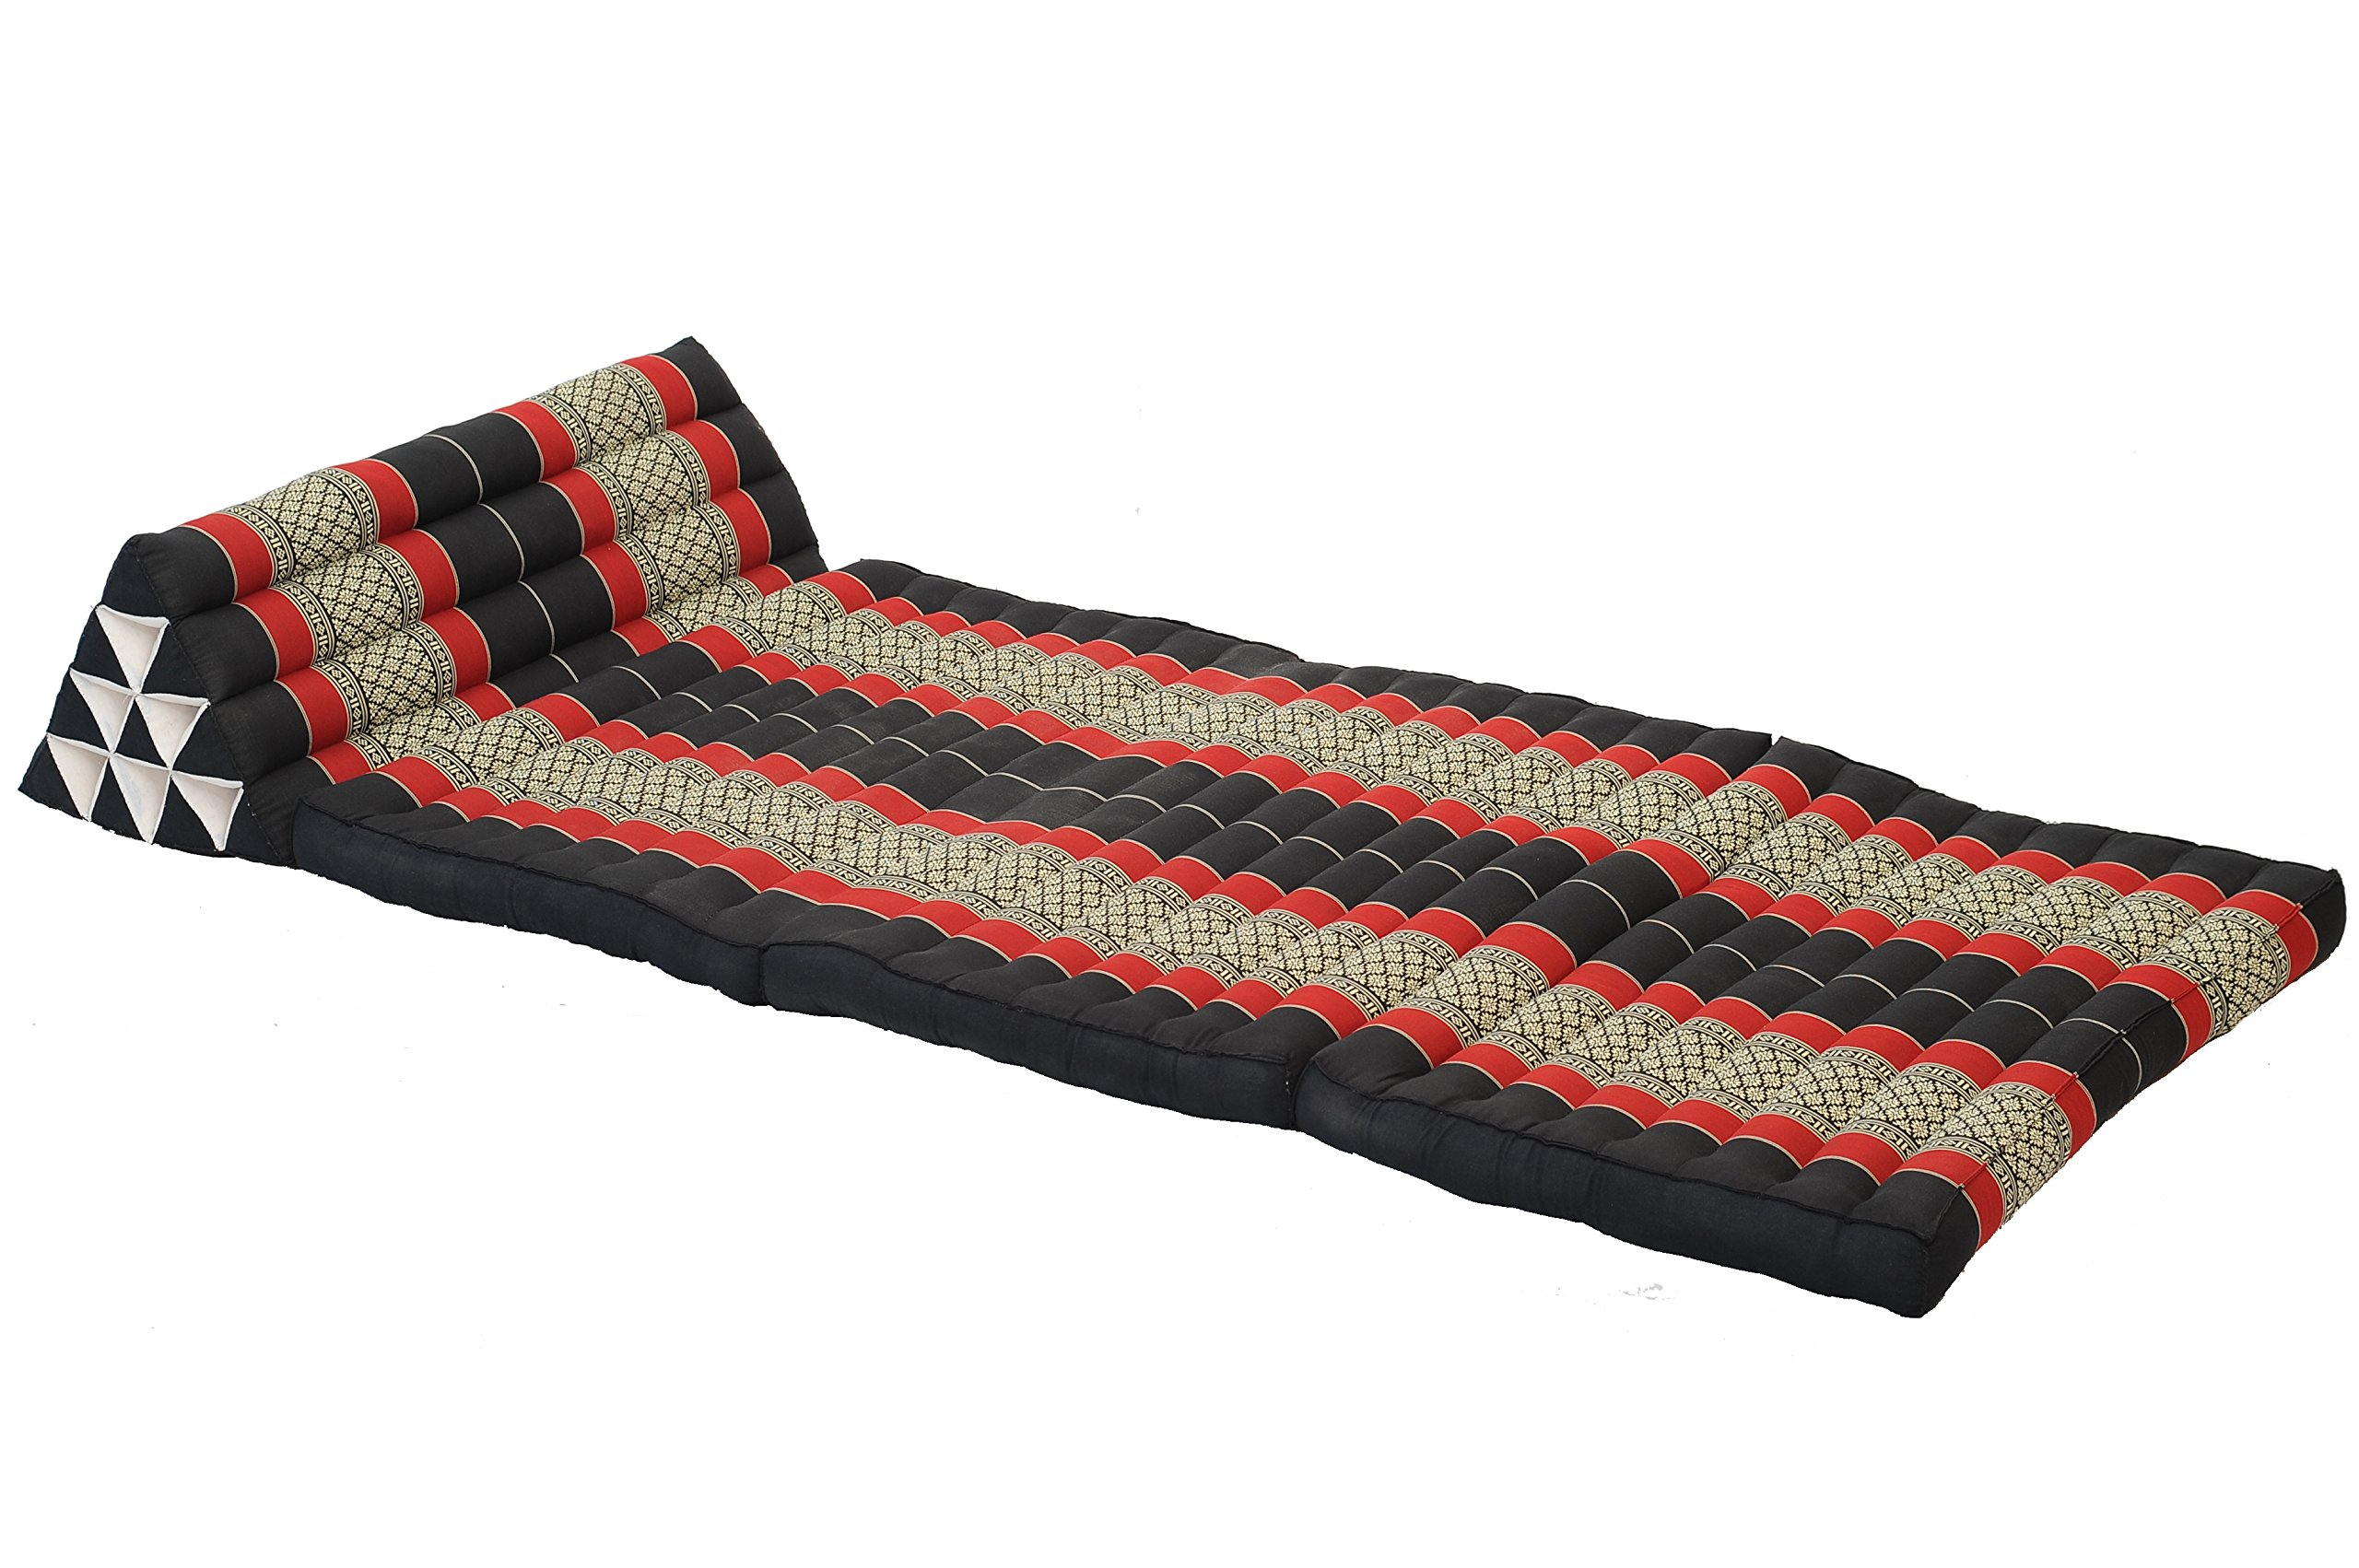 Lush Thai Matress (XXXL), foldable, with triangular headrest, Thai Design Blackred by Handelsturm